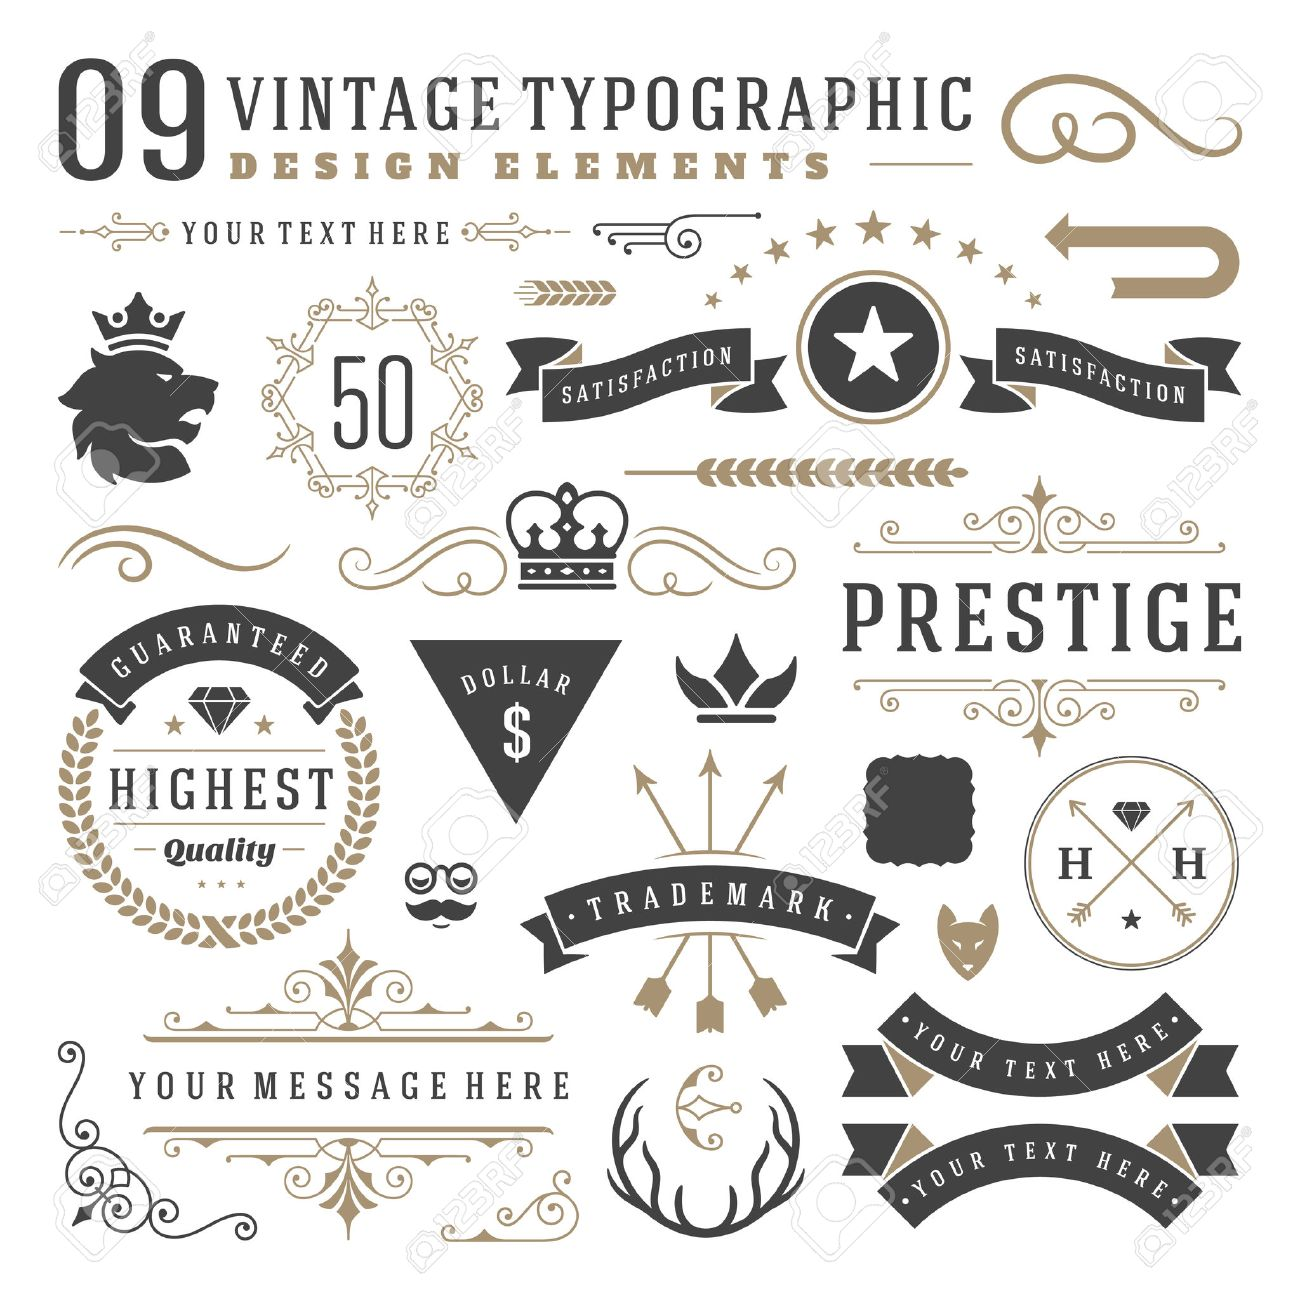 Retro vintage typographic design elements. Labels ribbons, logos symbols, crowns, calligraphy swirls, ornaments and other. Stock Vector - 48325028